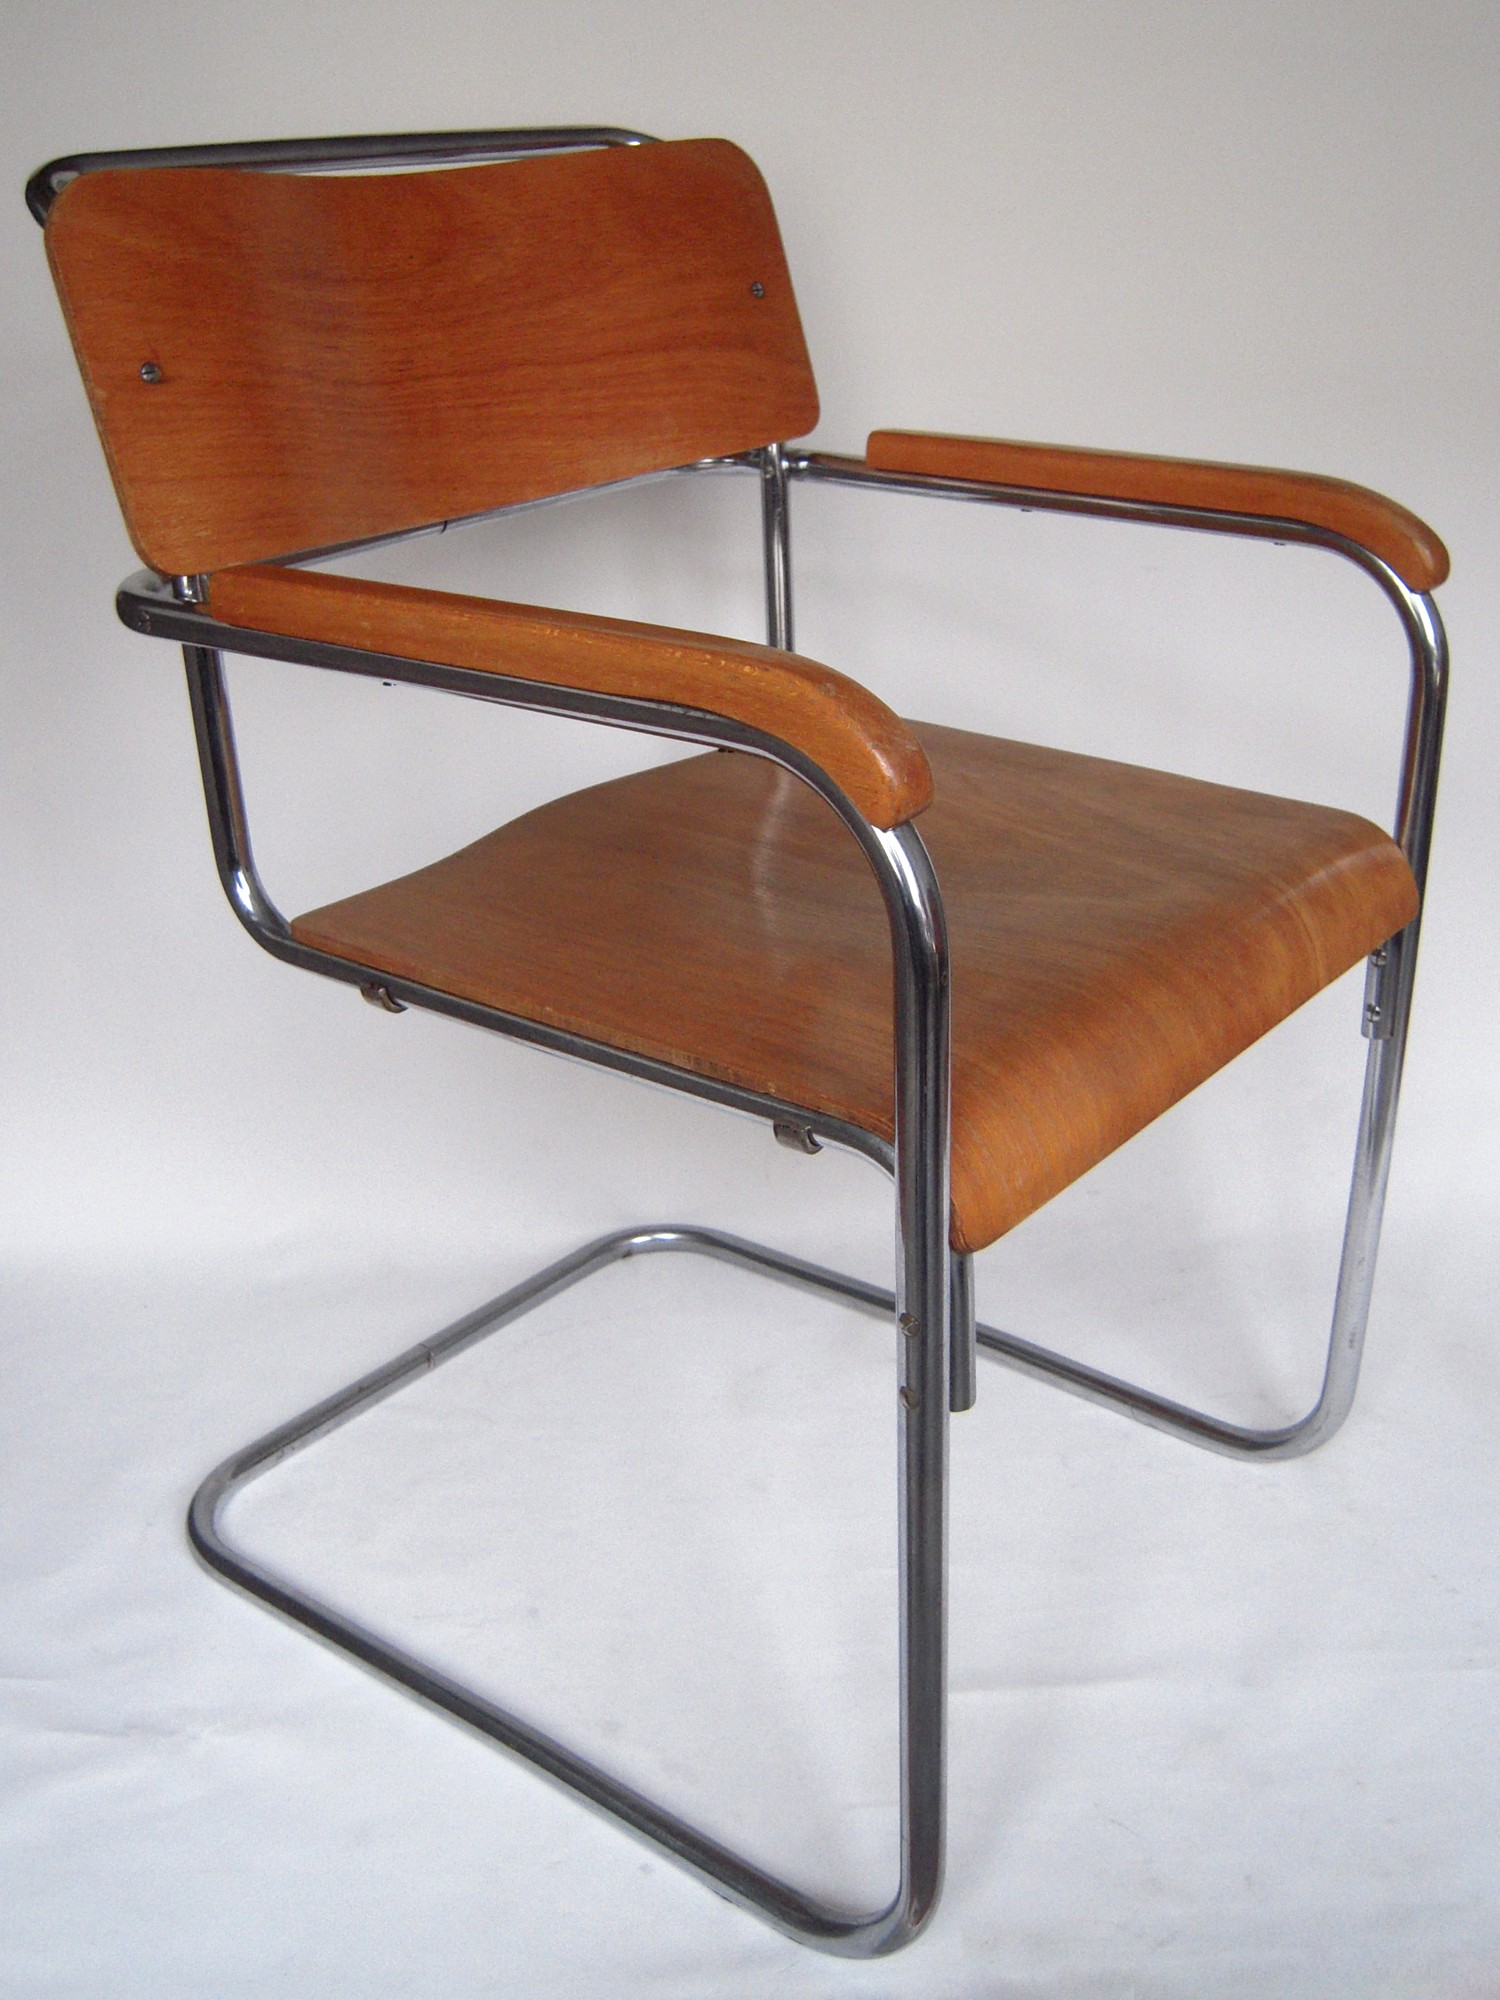 thonet modernist chair  s  design market - thonet modernist chair  s previous next